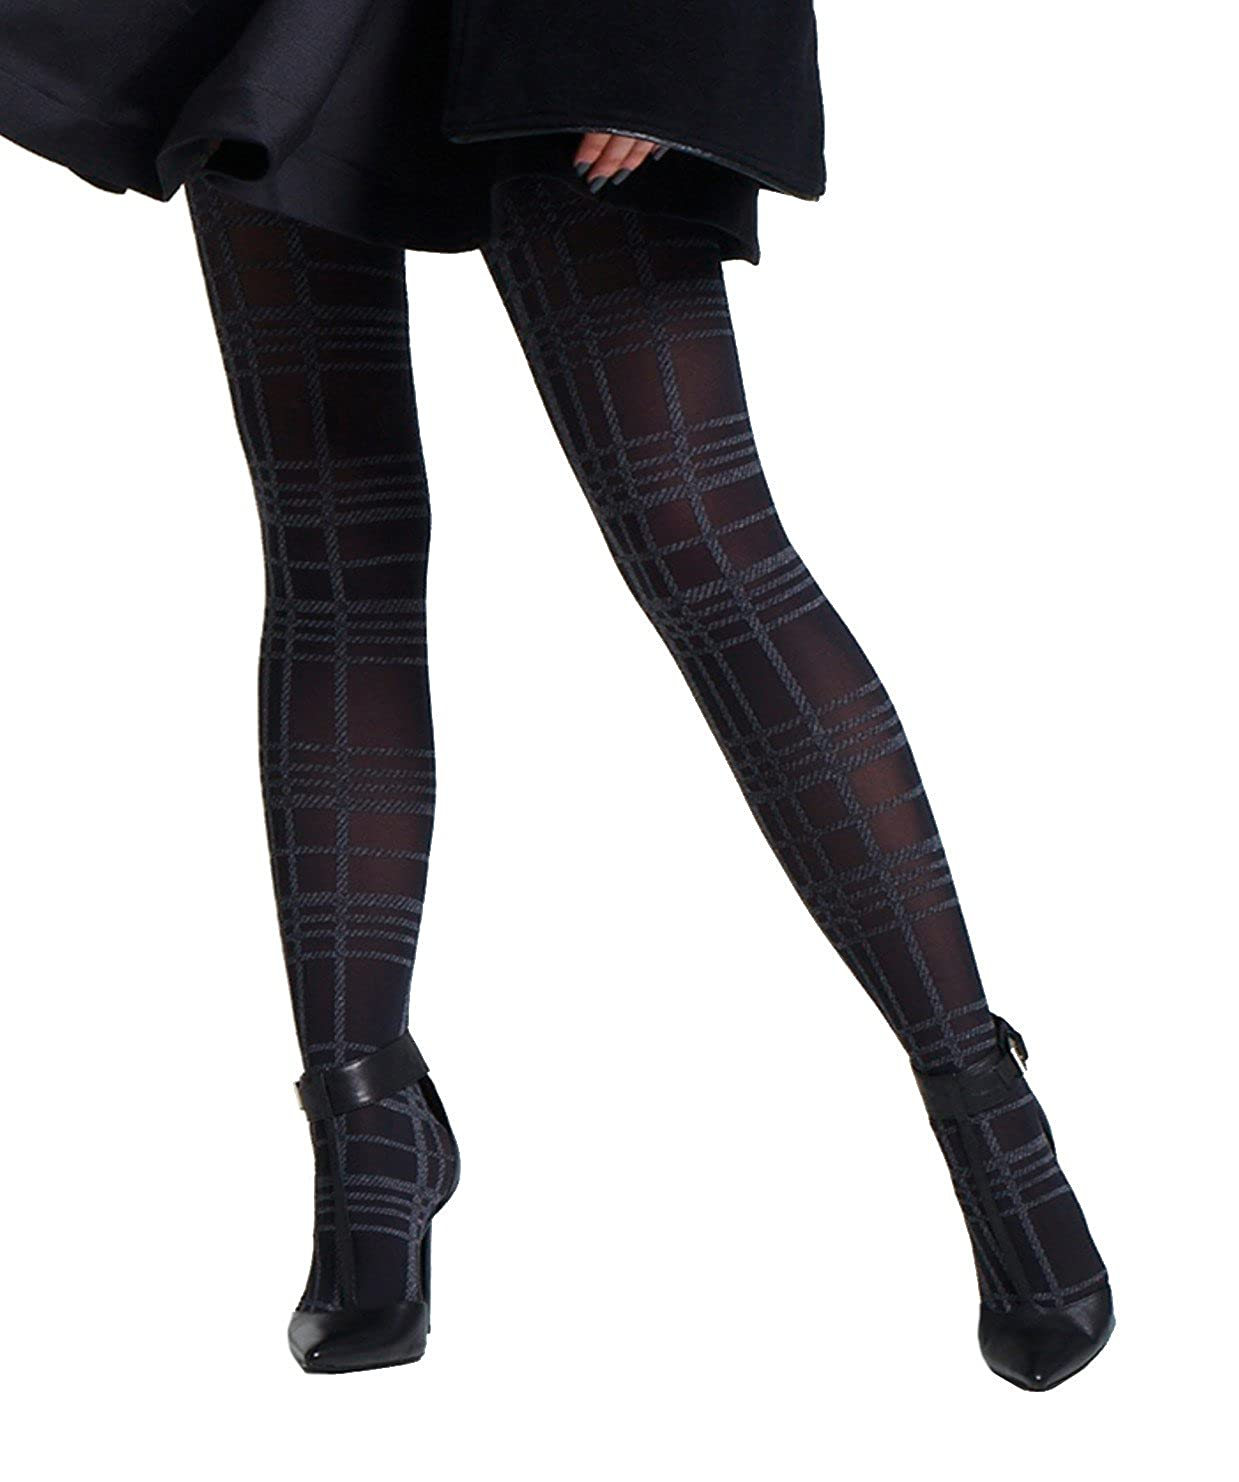 1 Pair Jonathan Aston Rewind Tartan Tights. Black-Grey. Winter opaque tights Jonathan Aston Hosiery